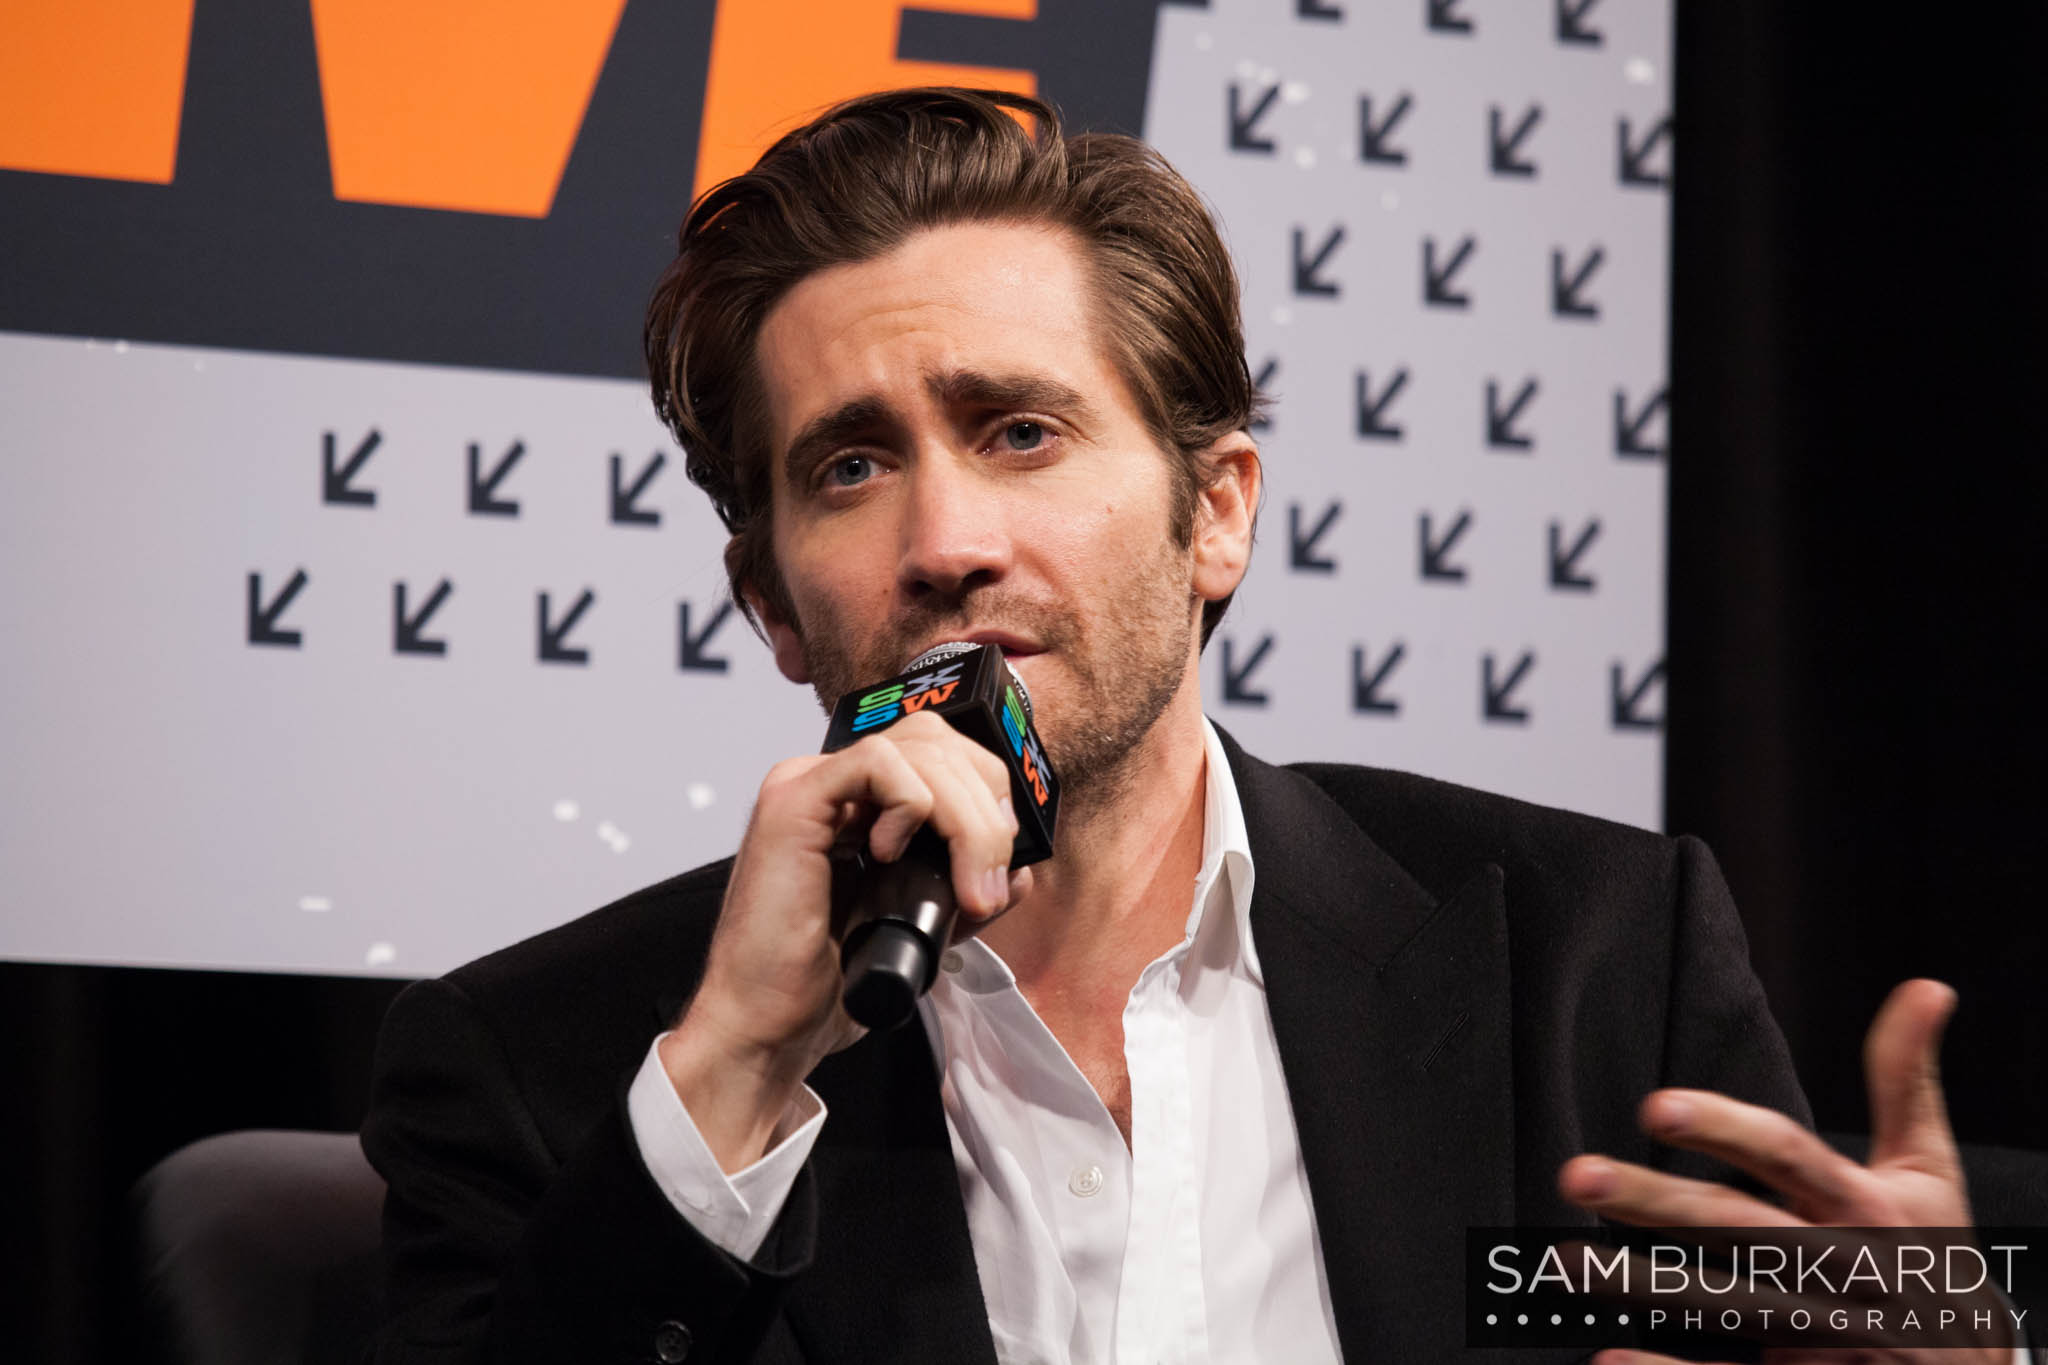 Jake Gyllenhaal at SXSW 2016 for Demolition interview